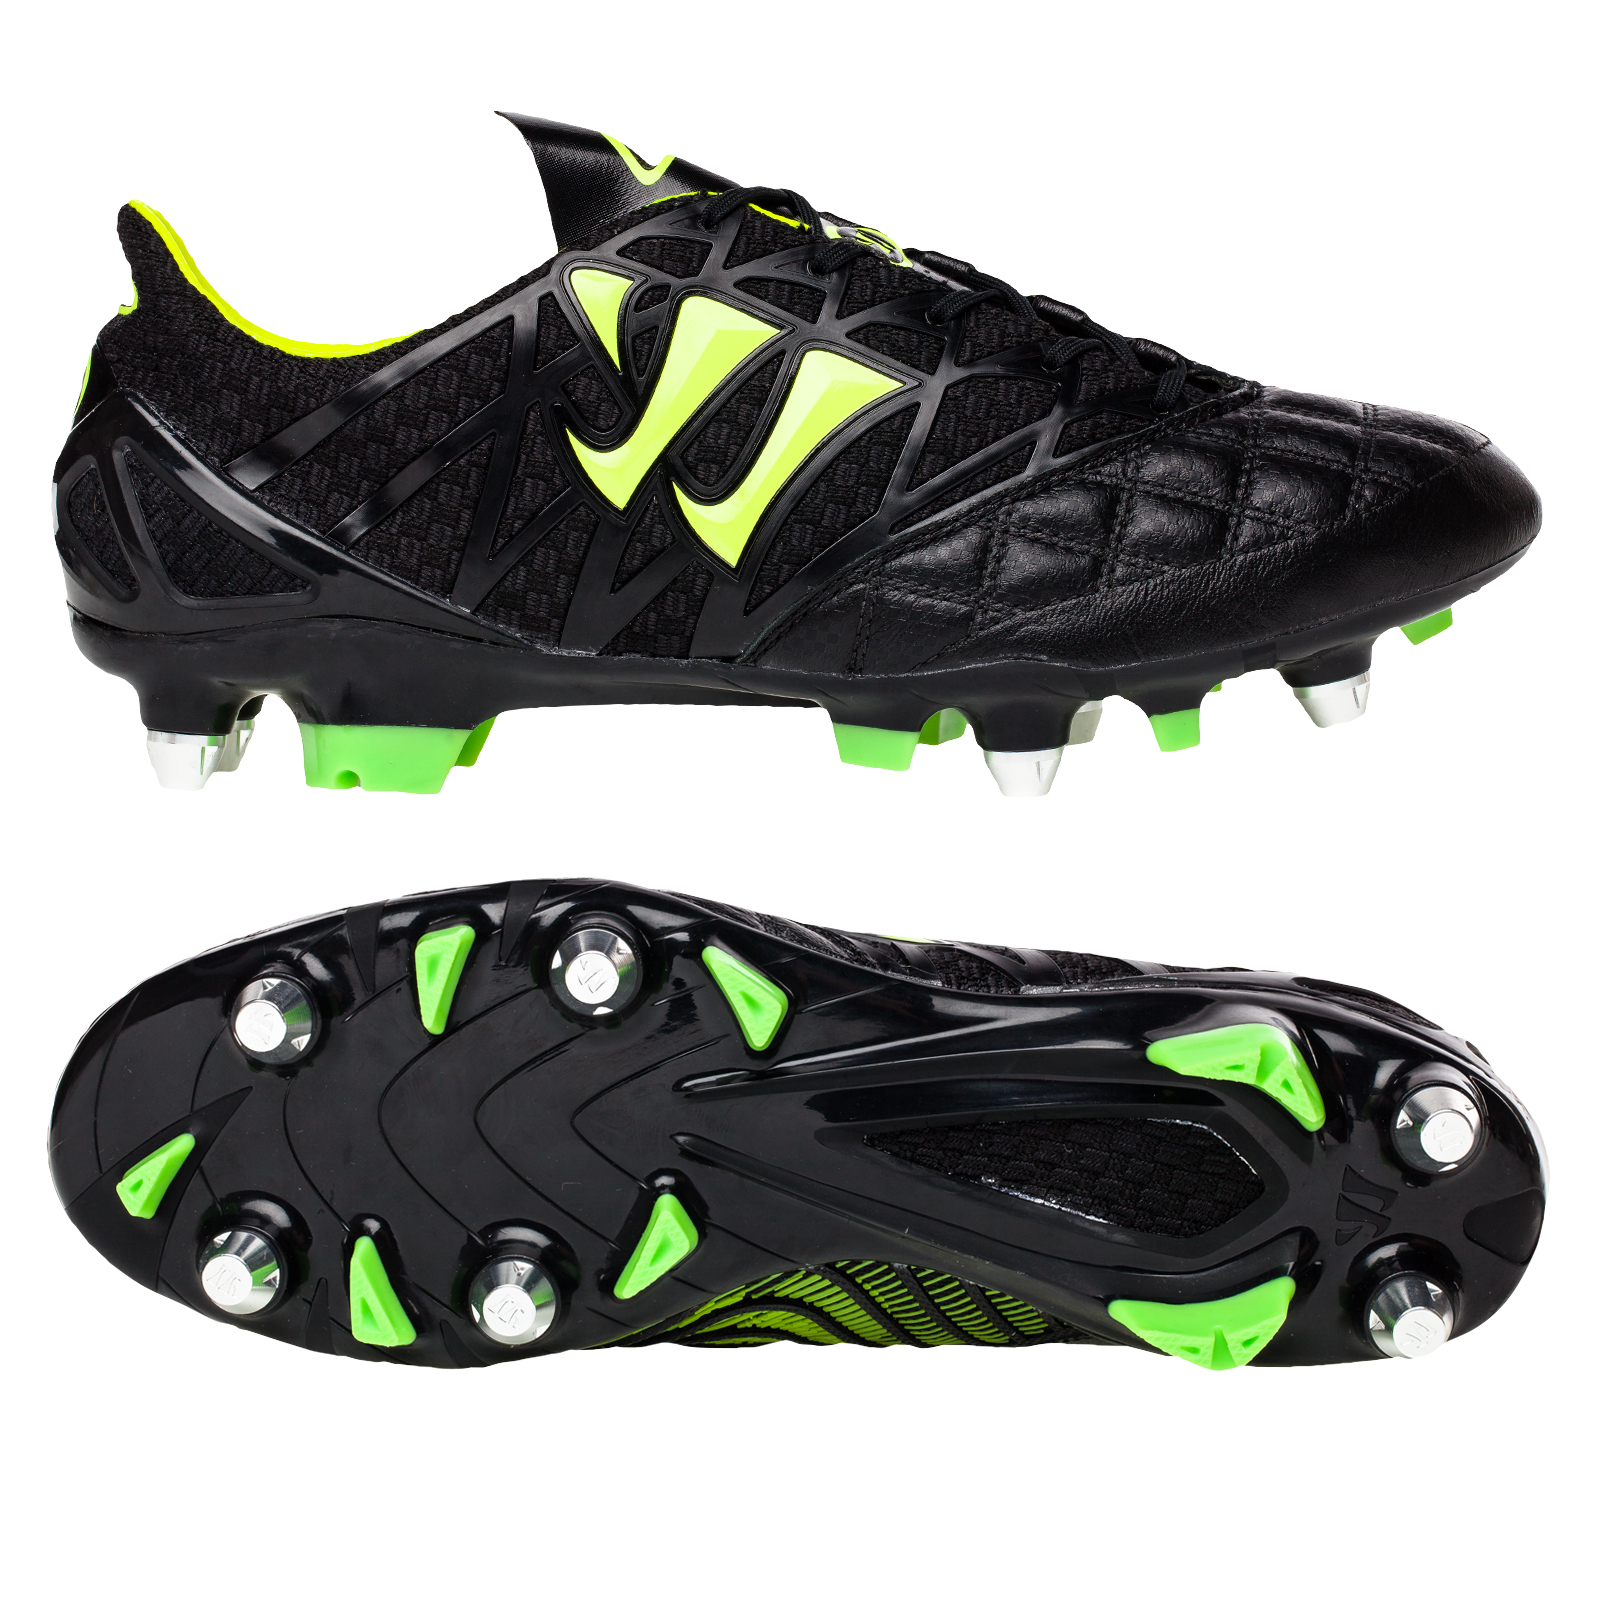 Warrior Sports Gambler K-Lite Soft Ground Football Boots-Black/Jazz Green Black